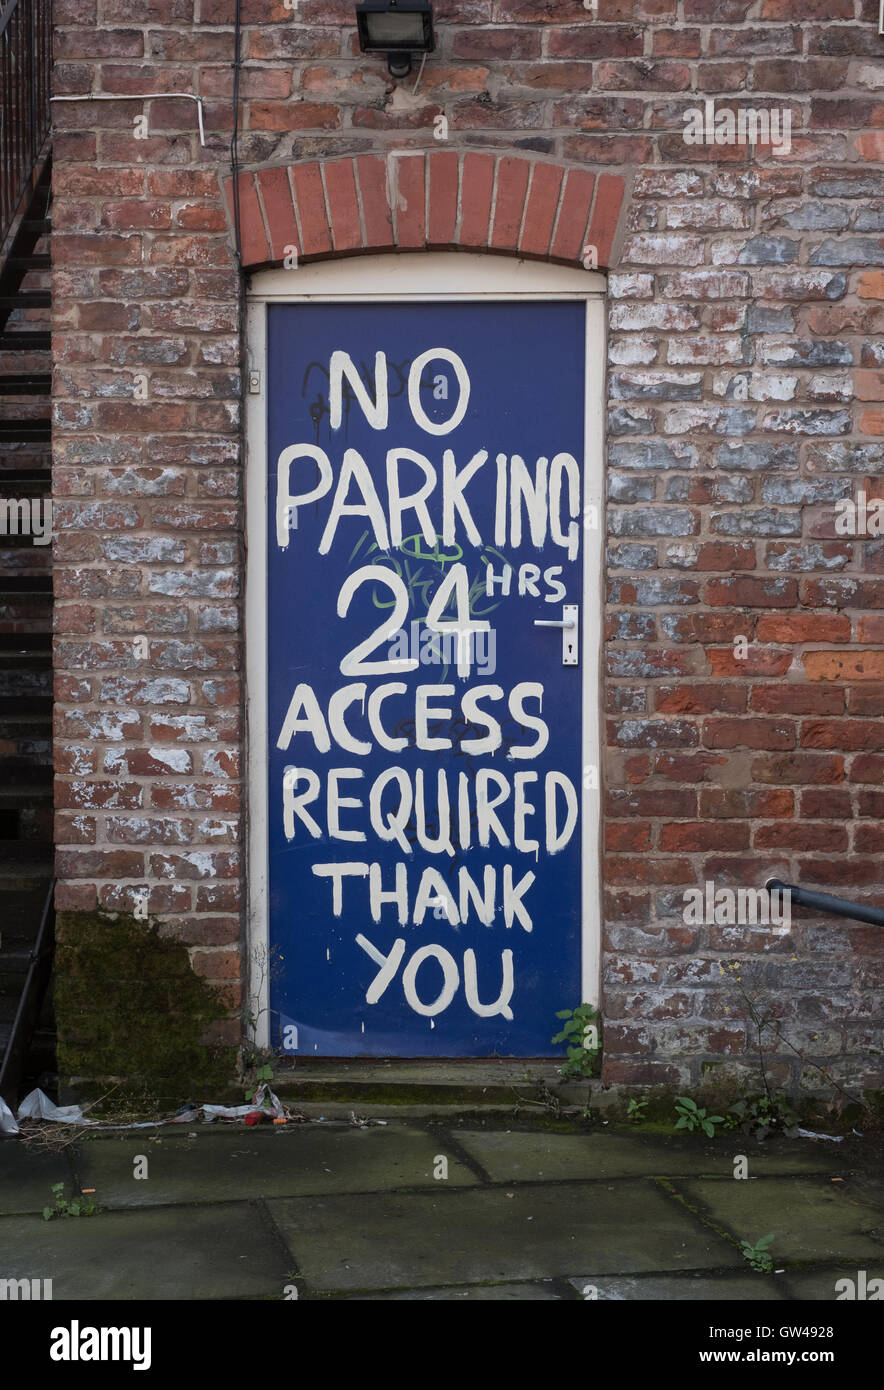 No parking restrictions daubed on wall at back of shop - Stock Image